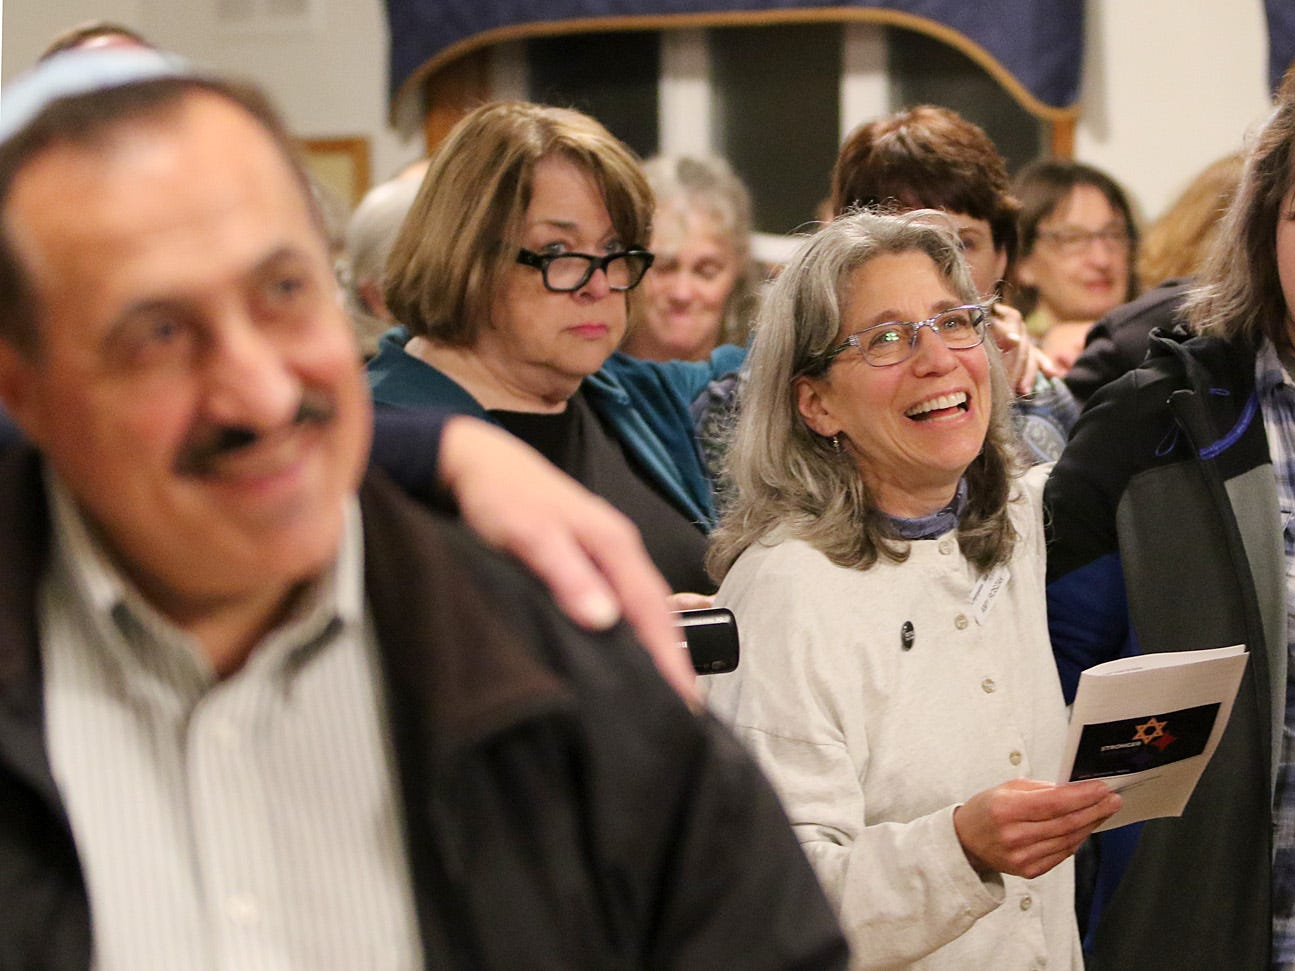 """The Beth Hatikvah (House of Hope) Synagogue in Bremerton held a memorial service for the Tree of Life Synagogue shootings Tuesday night in Bremerton.  Th congregation joins in singing """"This Little Light of Mine"""" during the service."""